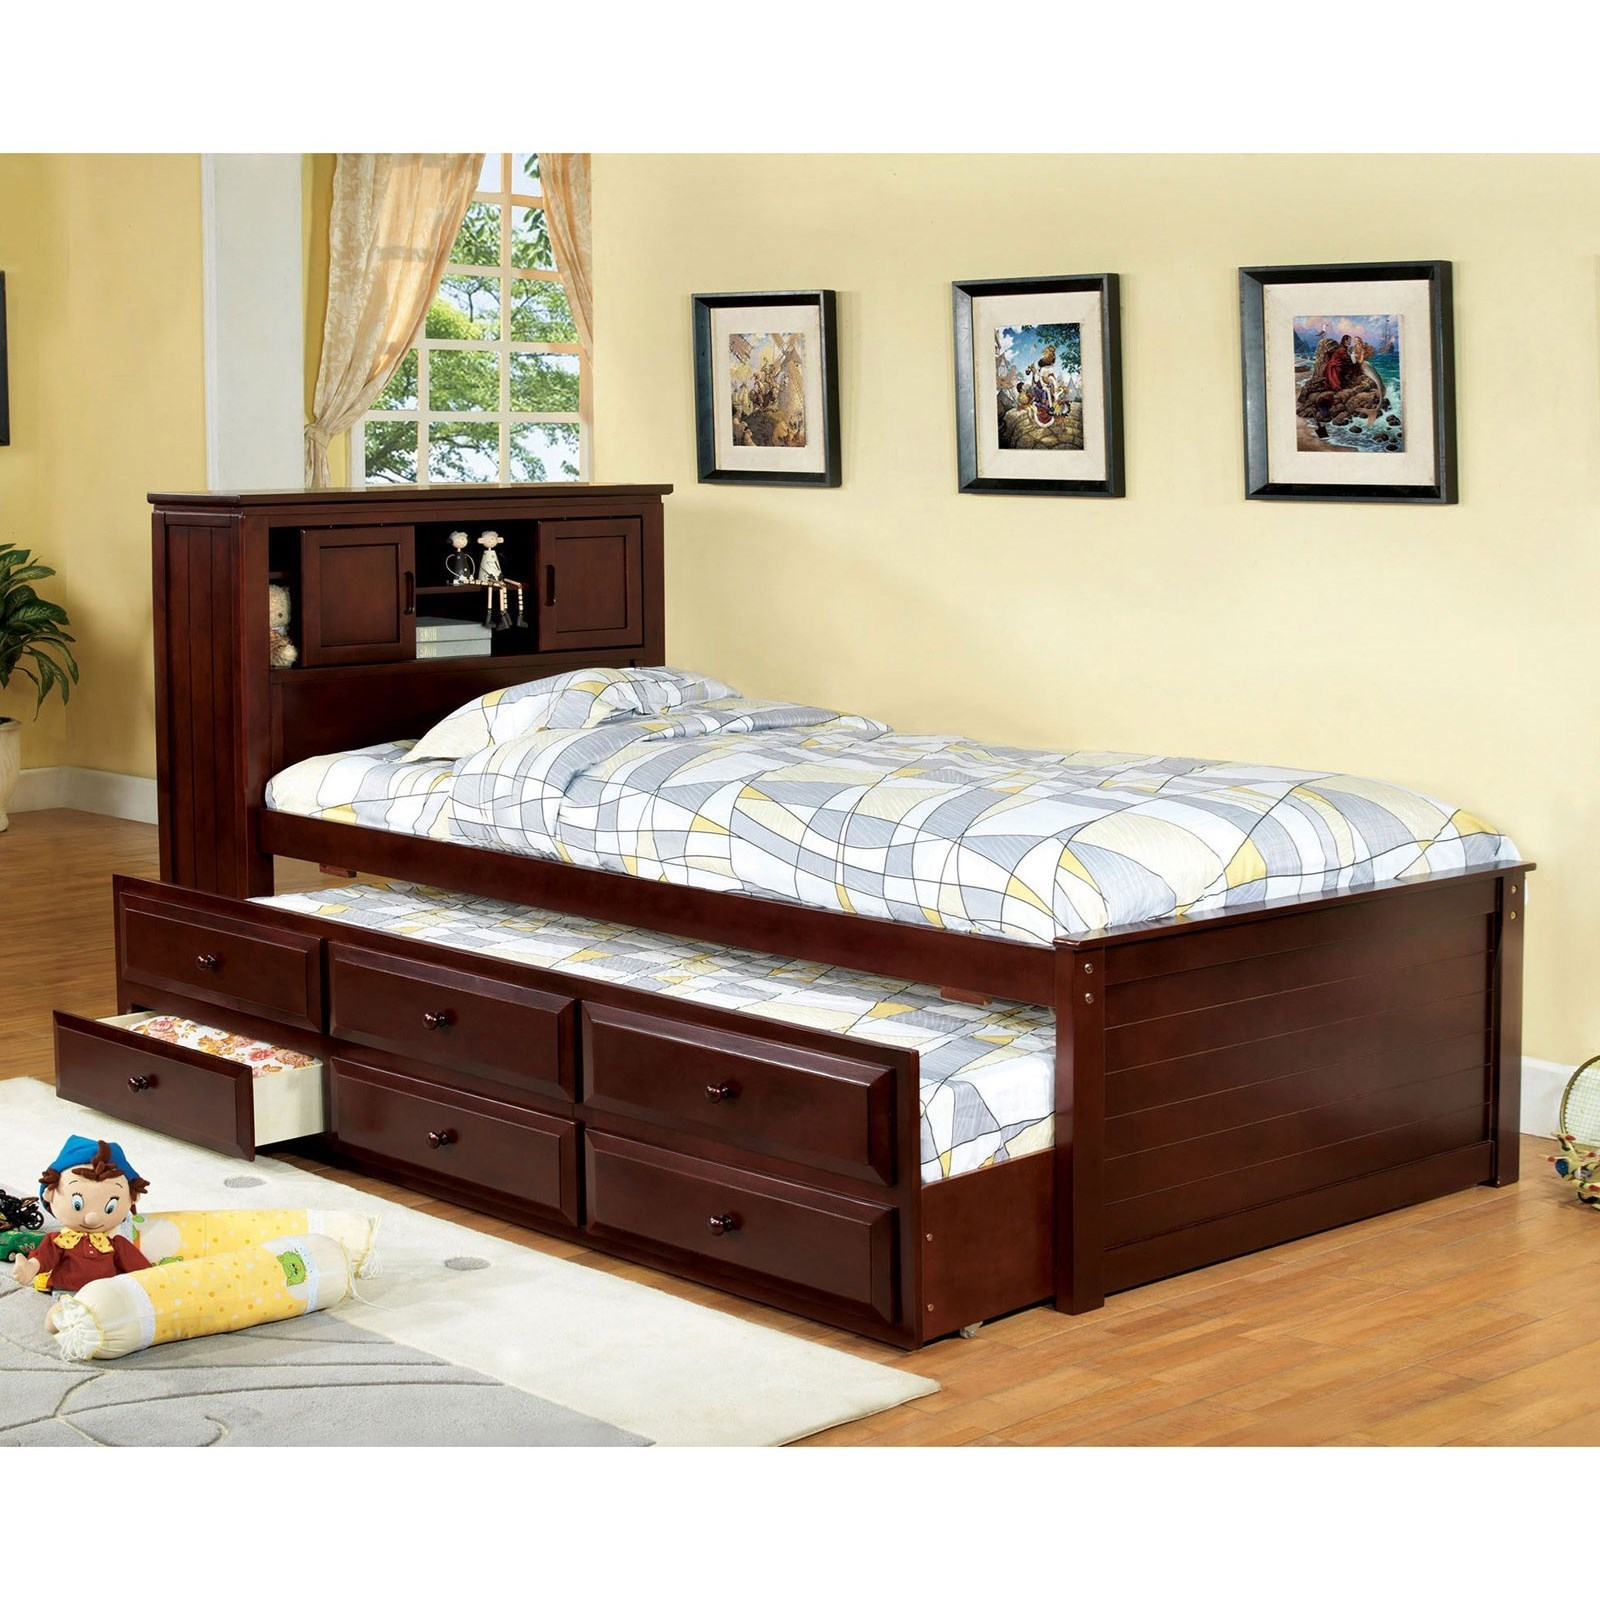 South Land Captain Twin Bed W Trundle And 3 Drawers